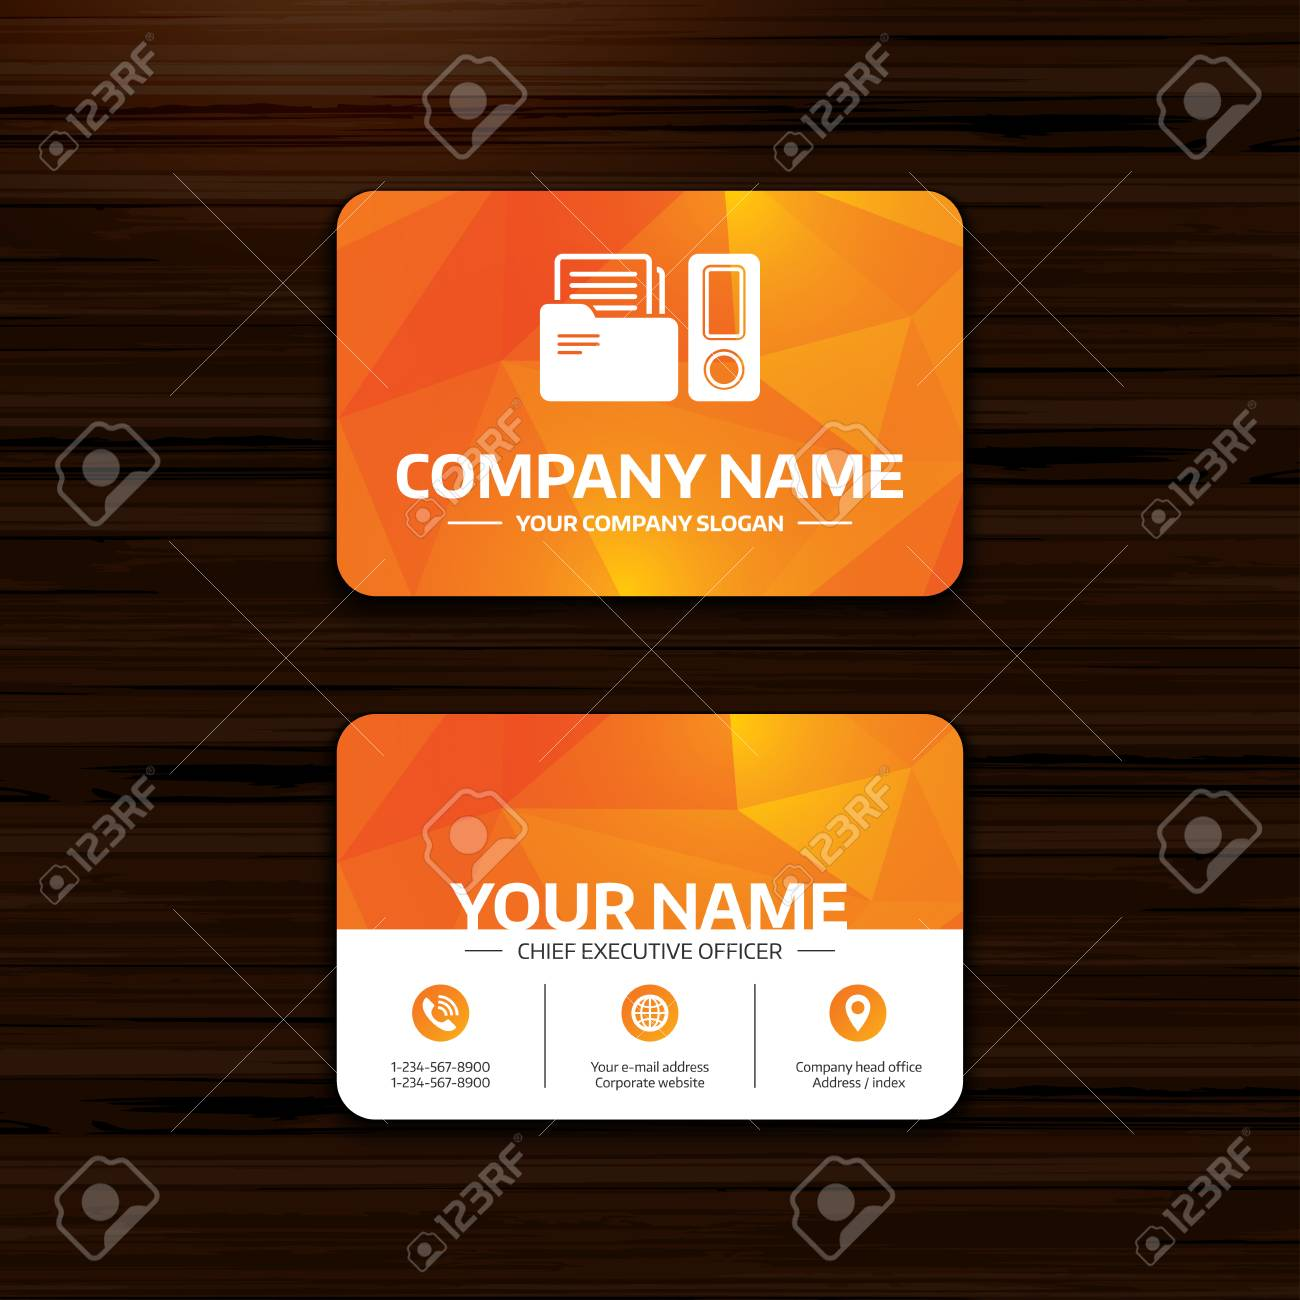 Business or visiting card template document folder sign accounting business or visiting card template document folder sign accounting binder symbol bookkeeping management reheart Choice Image